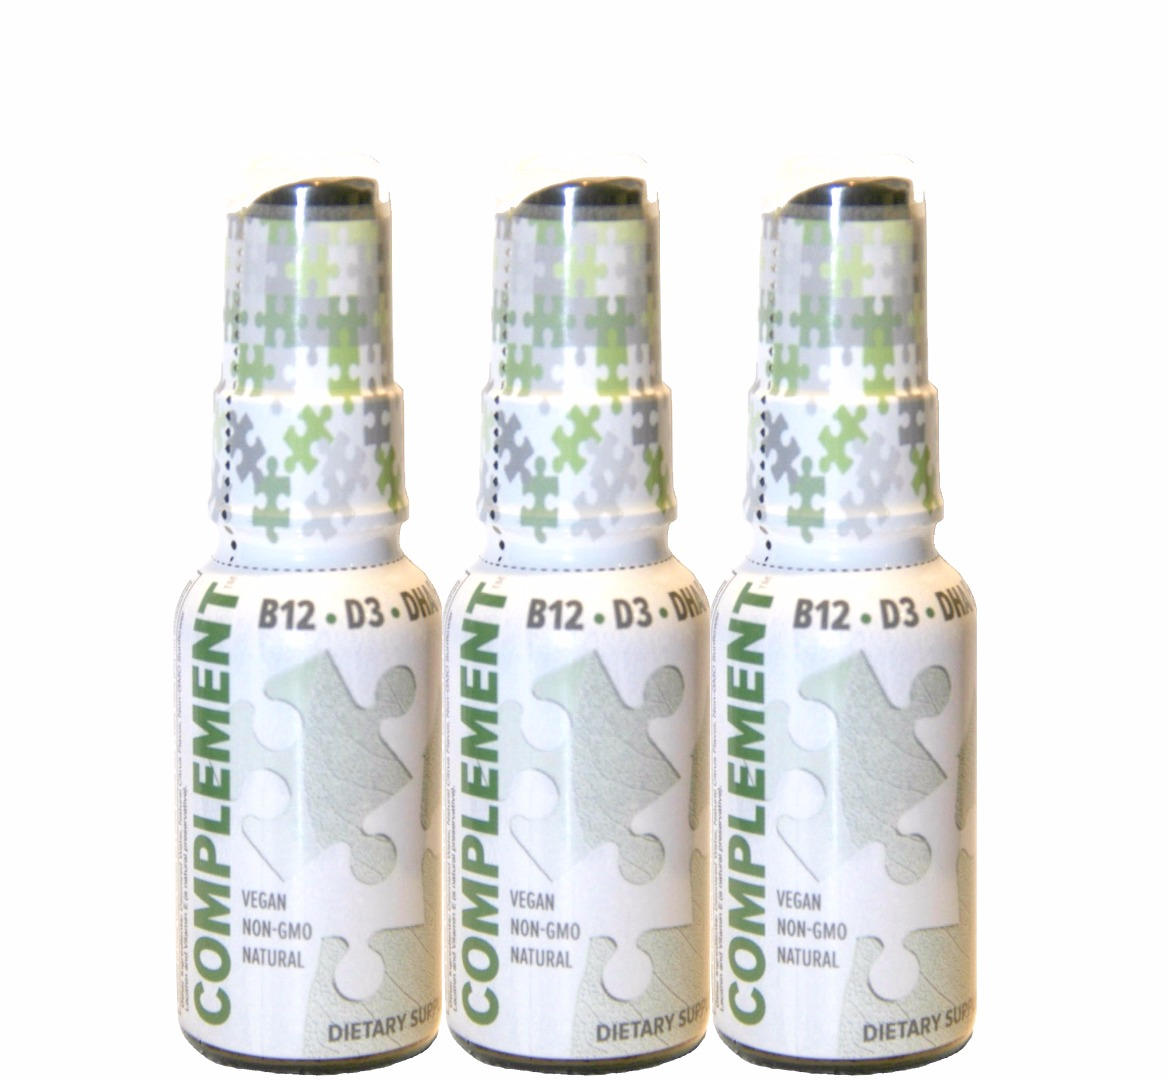 three bottles of Complement brand omegas, b12, D3